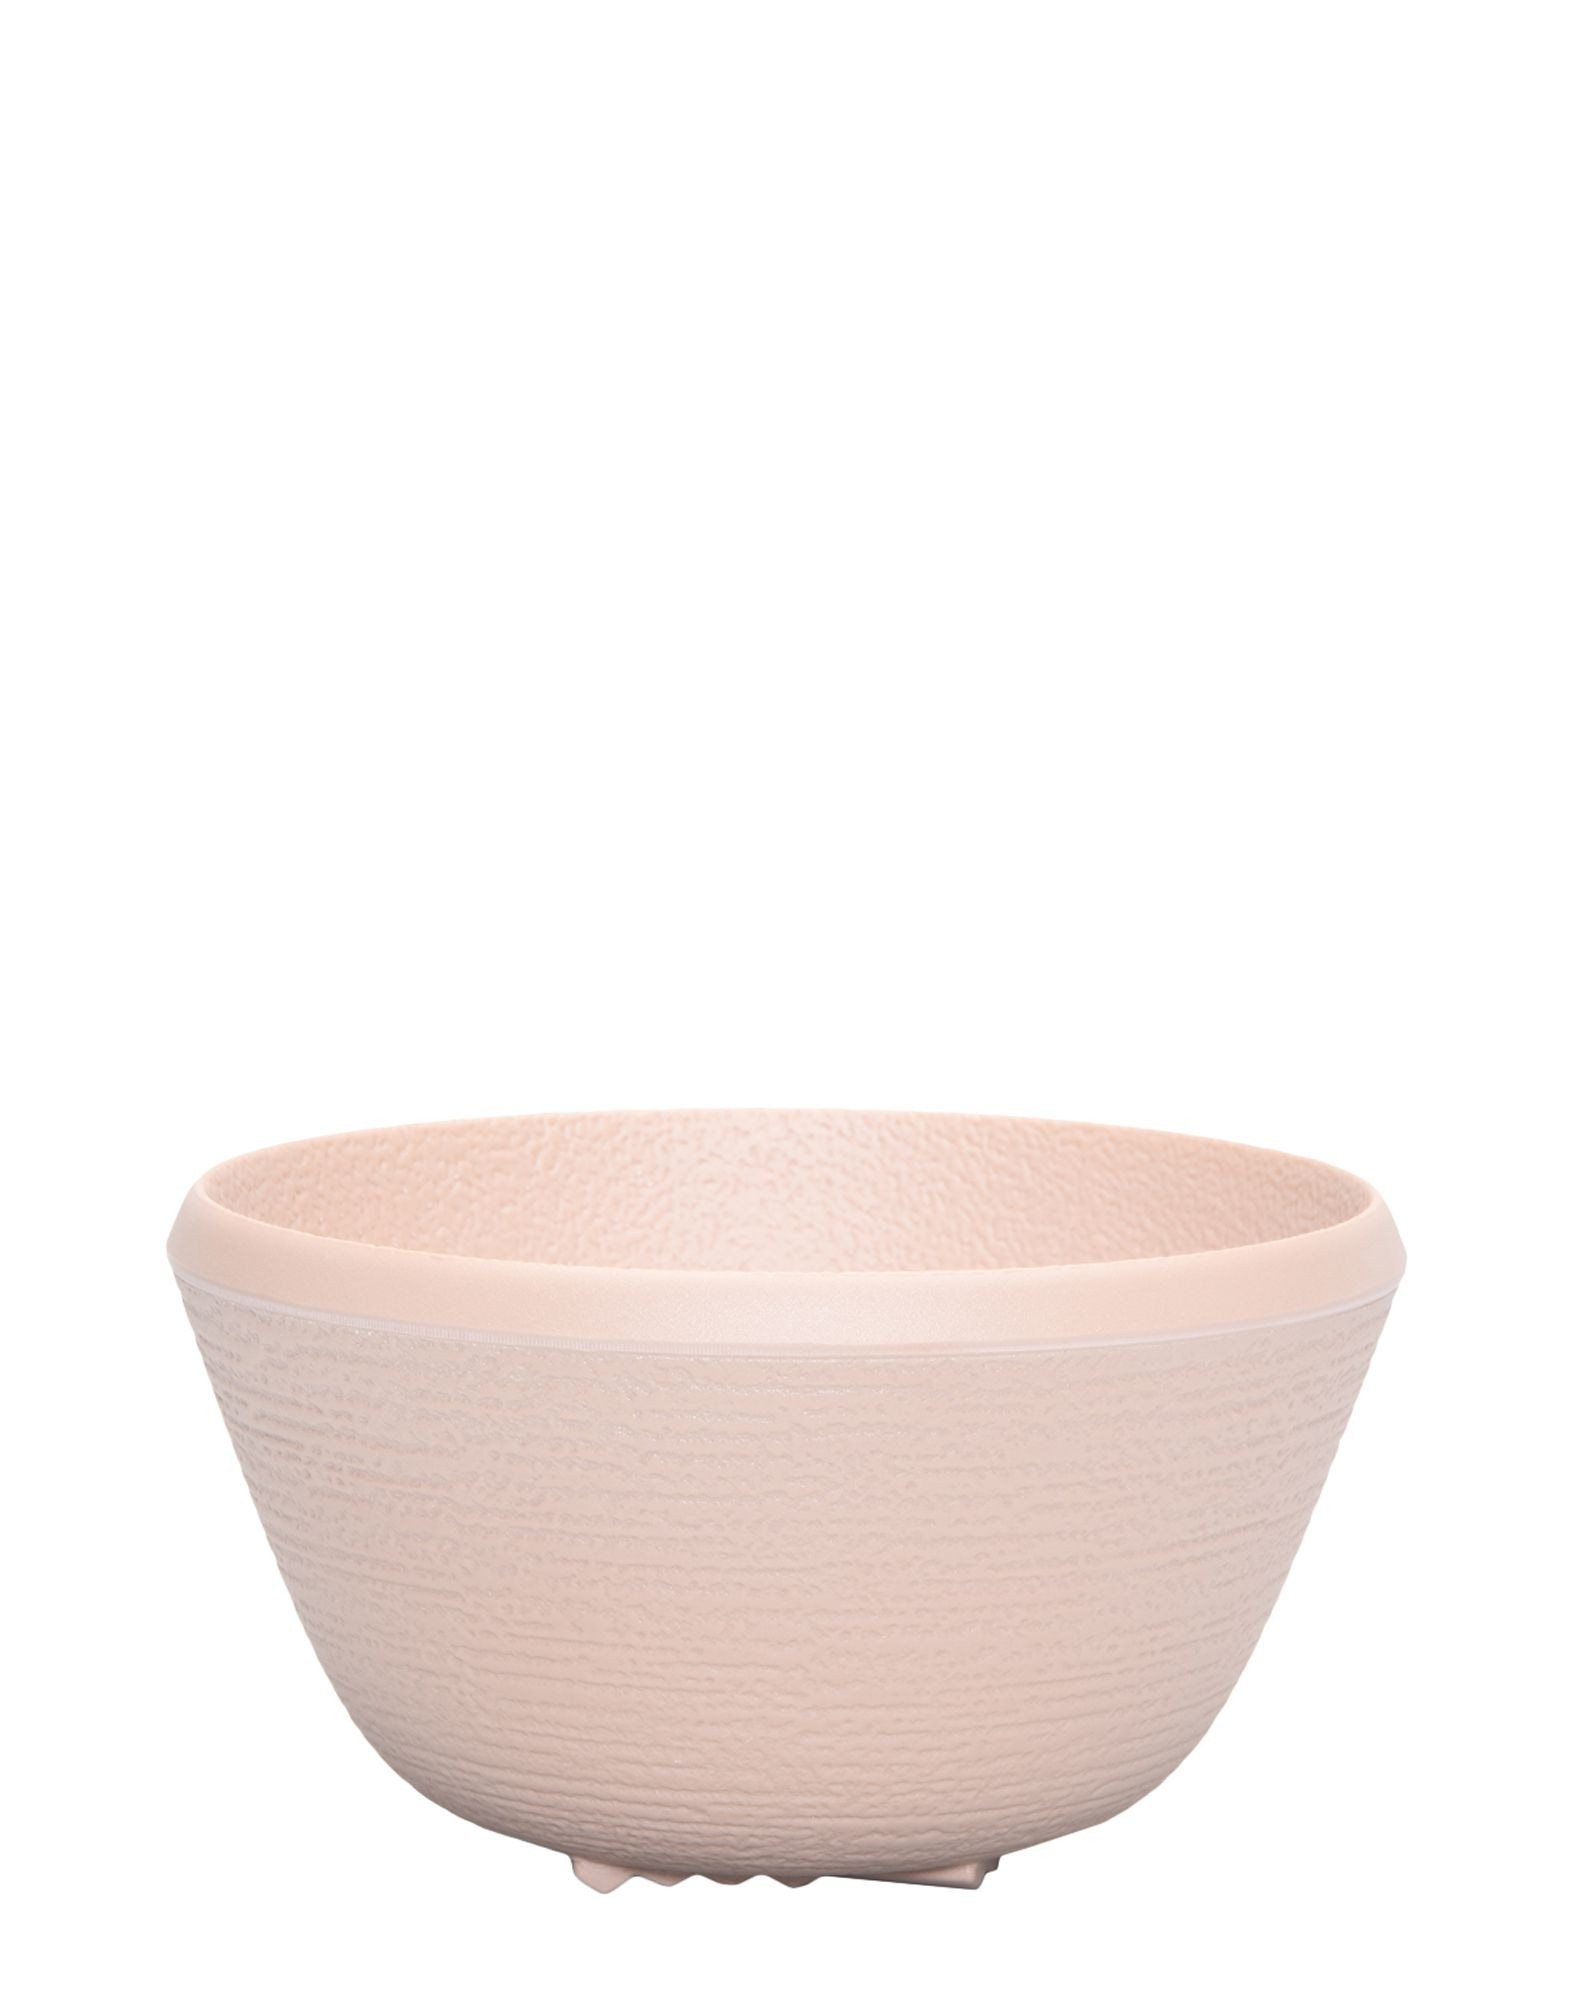 Kartell Trama Bowls (Priced Each, Sold In Sets Of 4) - Modern Planet